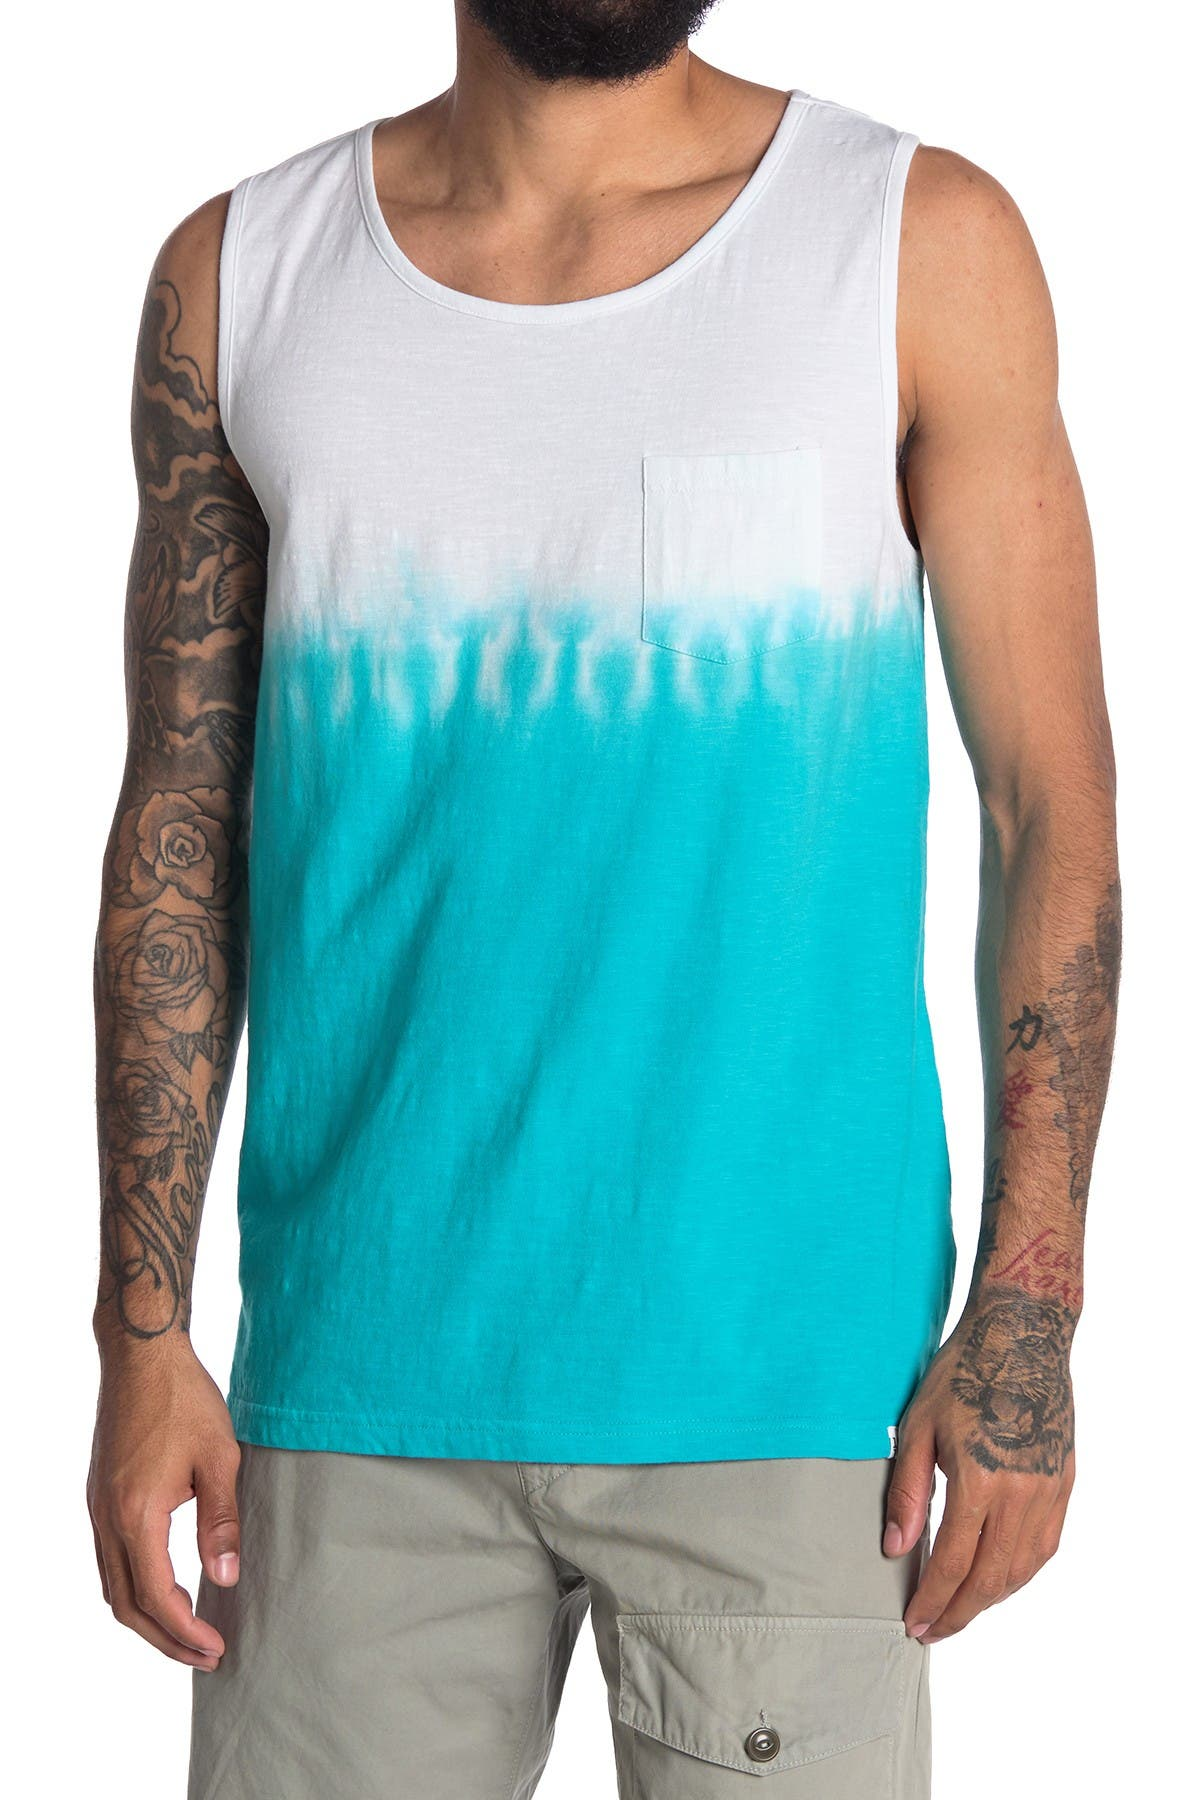 Image of Sovereign Code Swell Two-Tone Tank Top